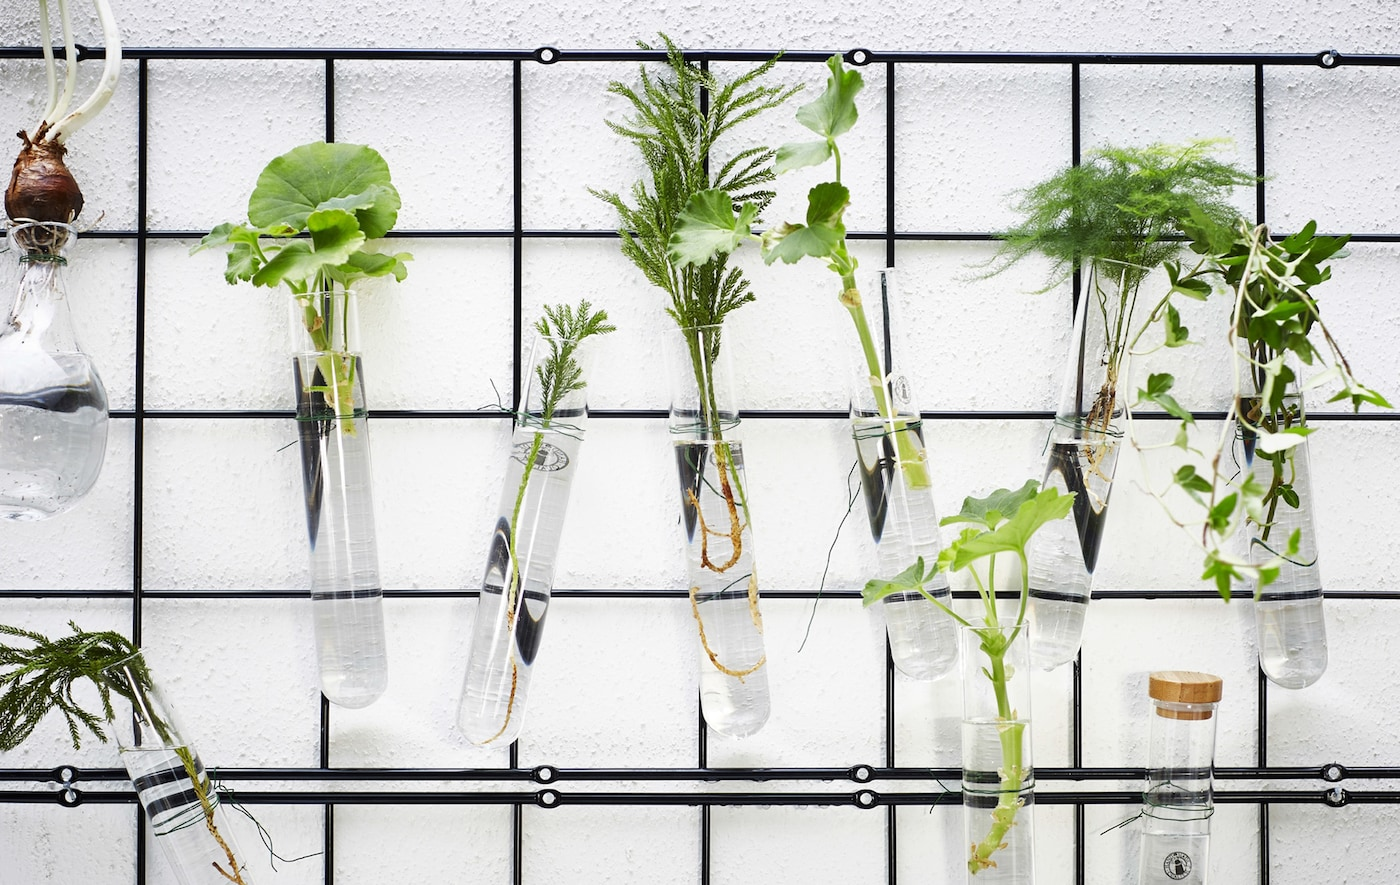 A wall rack with glass tubes containing water and plants.